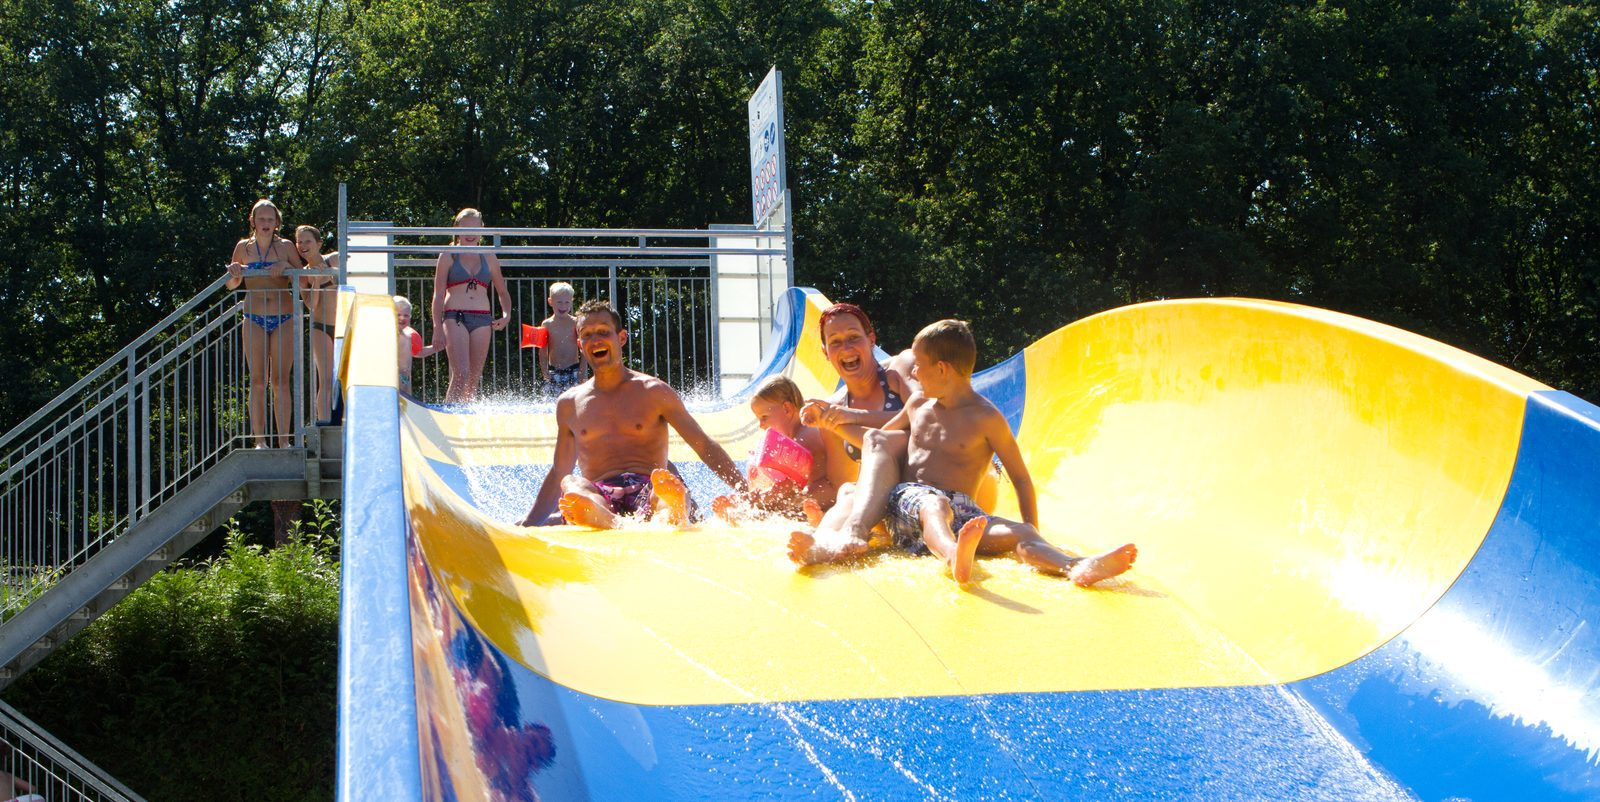 Down the awesome water slide with the whole family